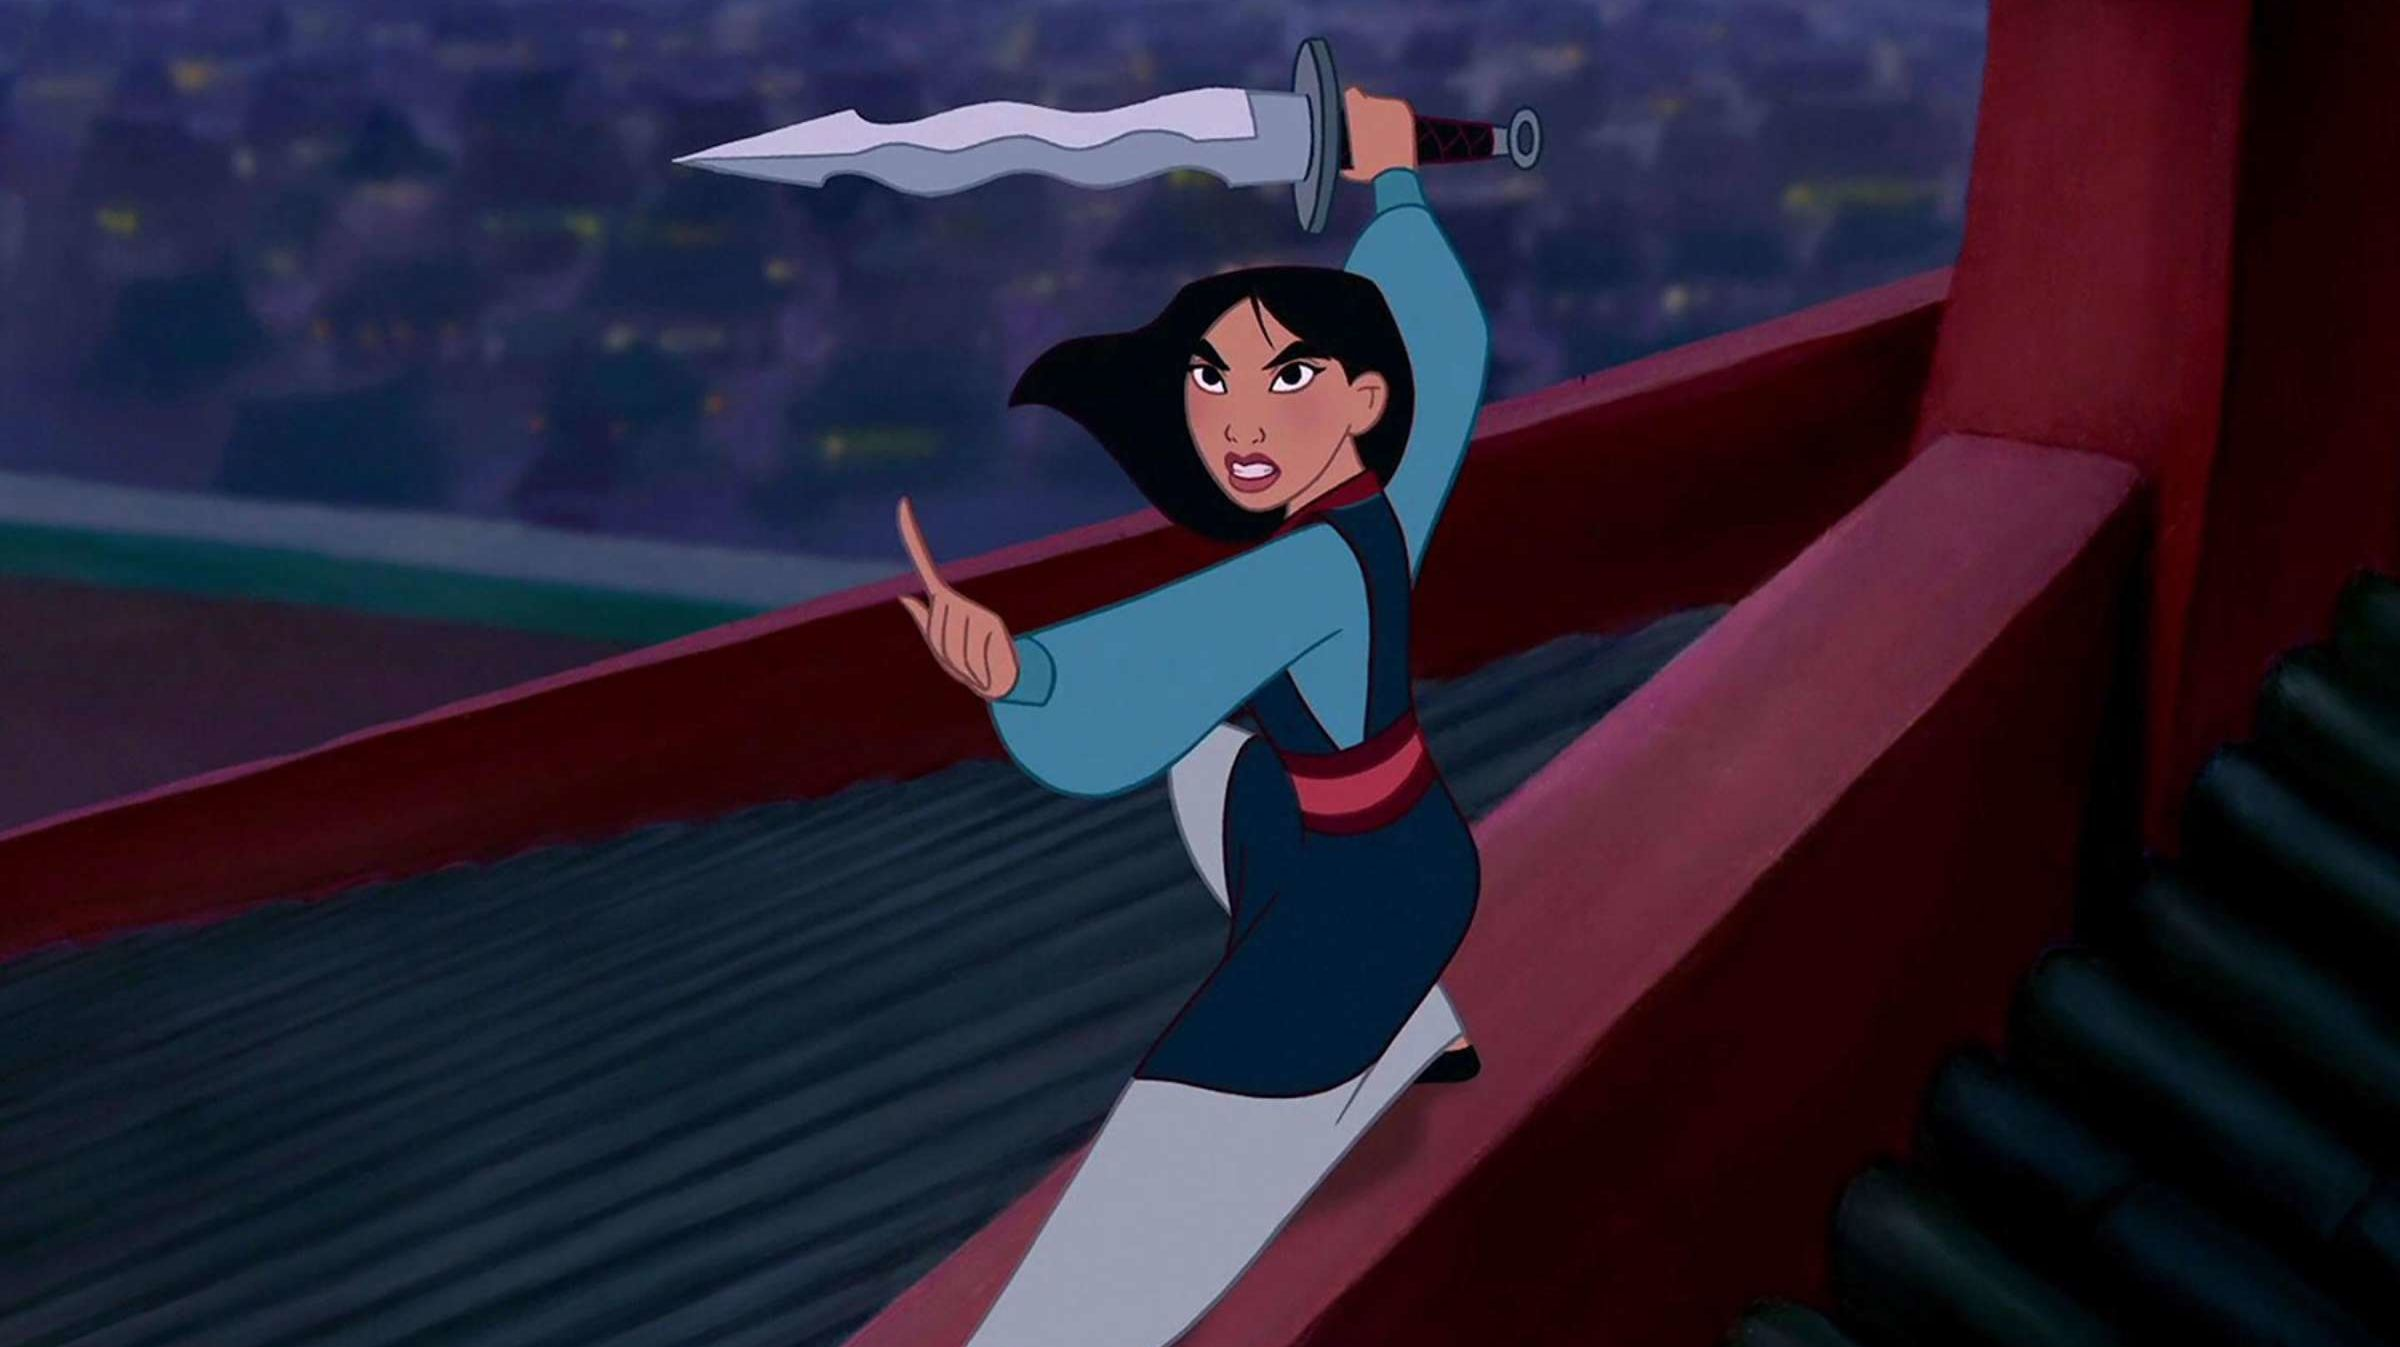 11 Memorable Facts About Disney's Mulan